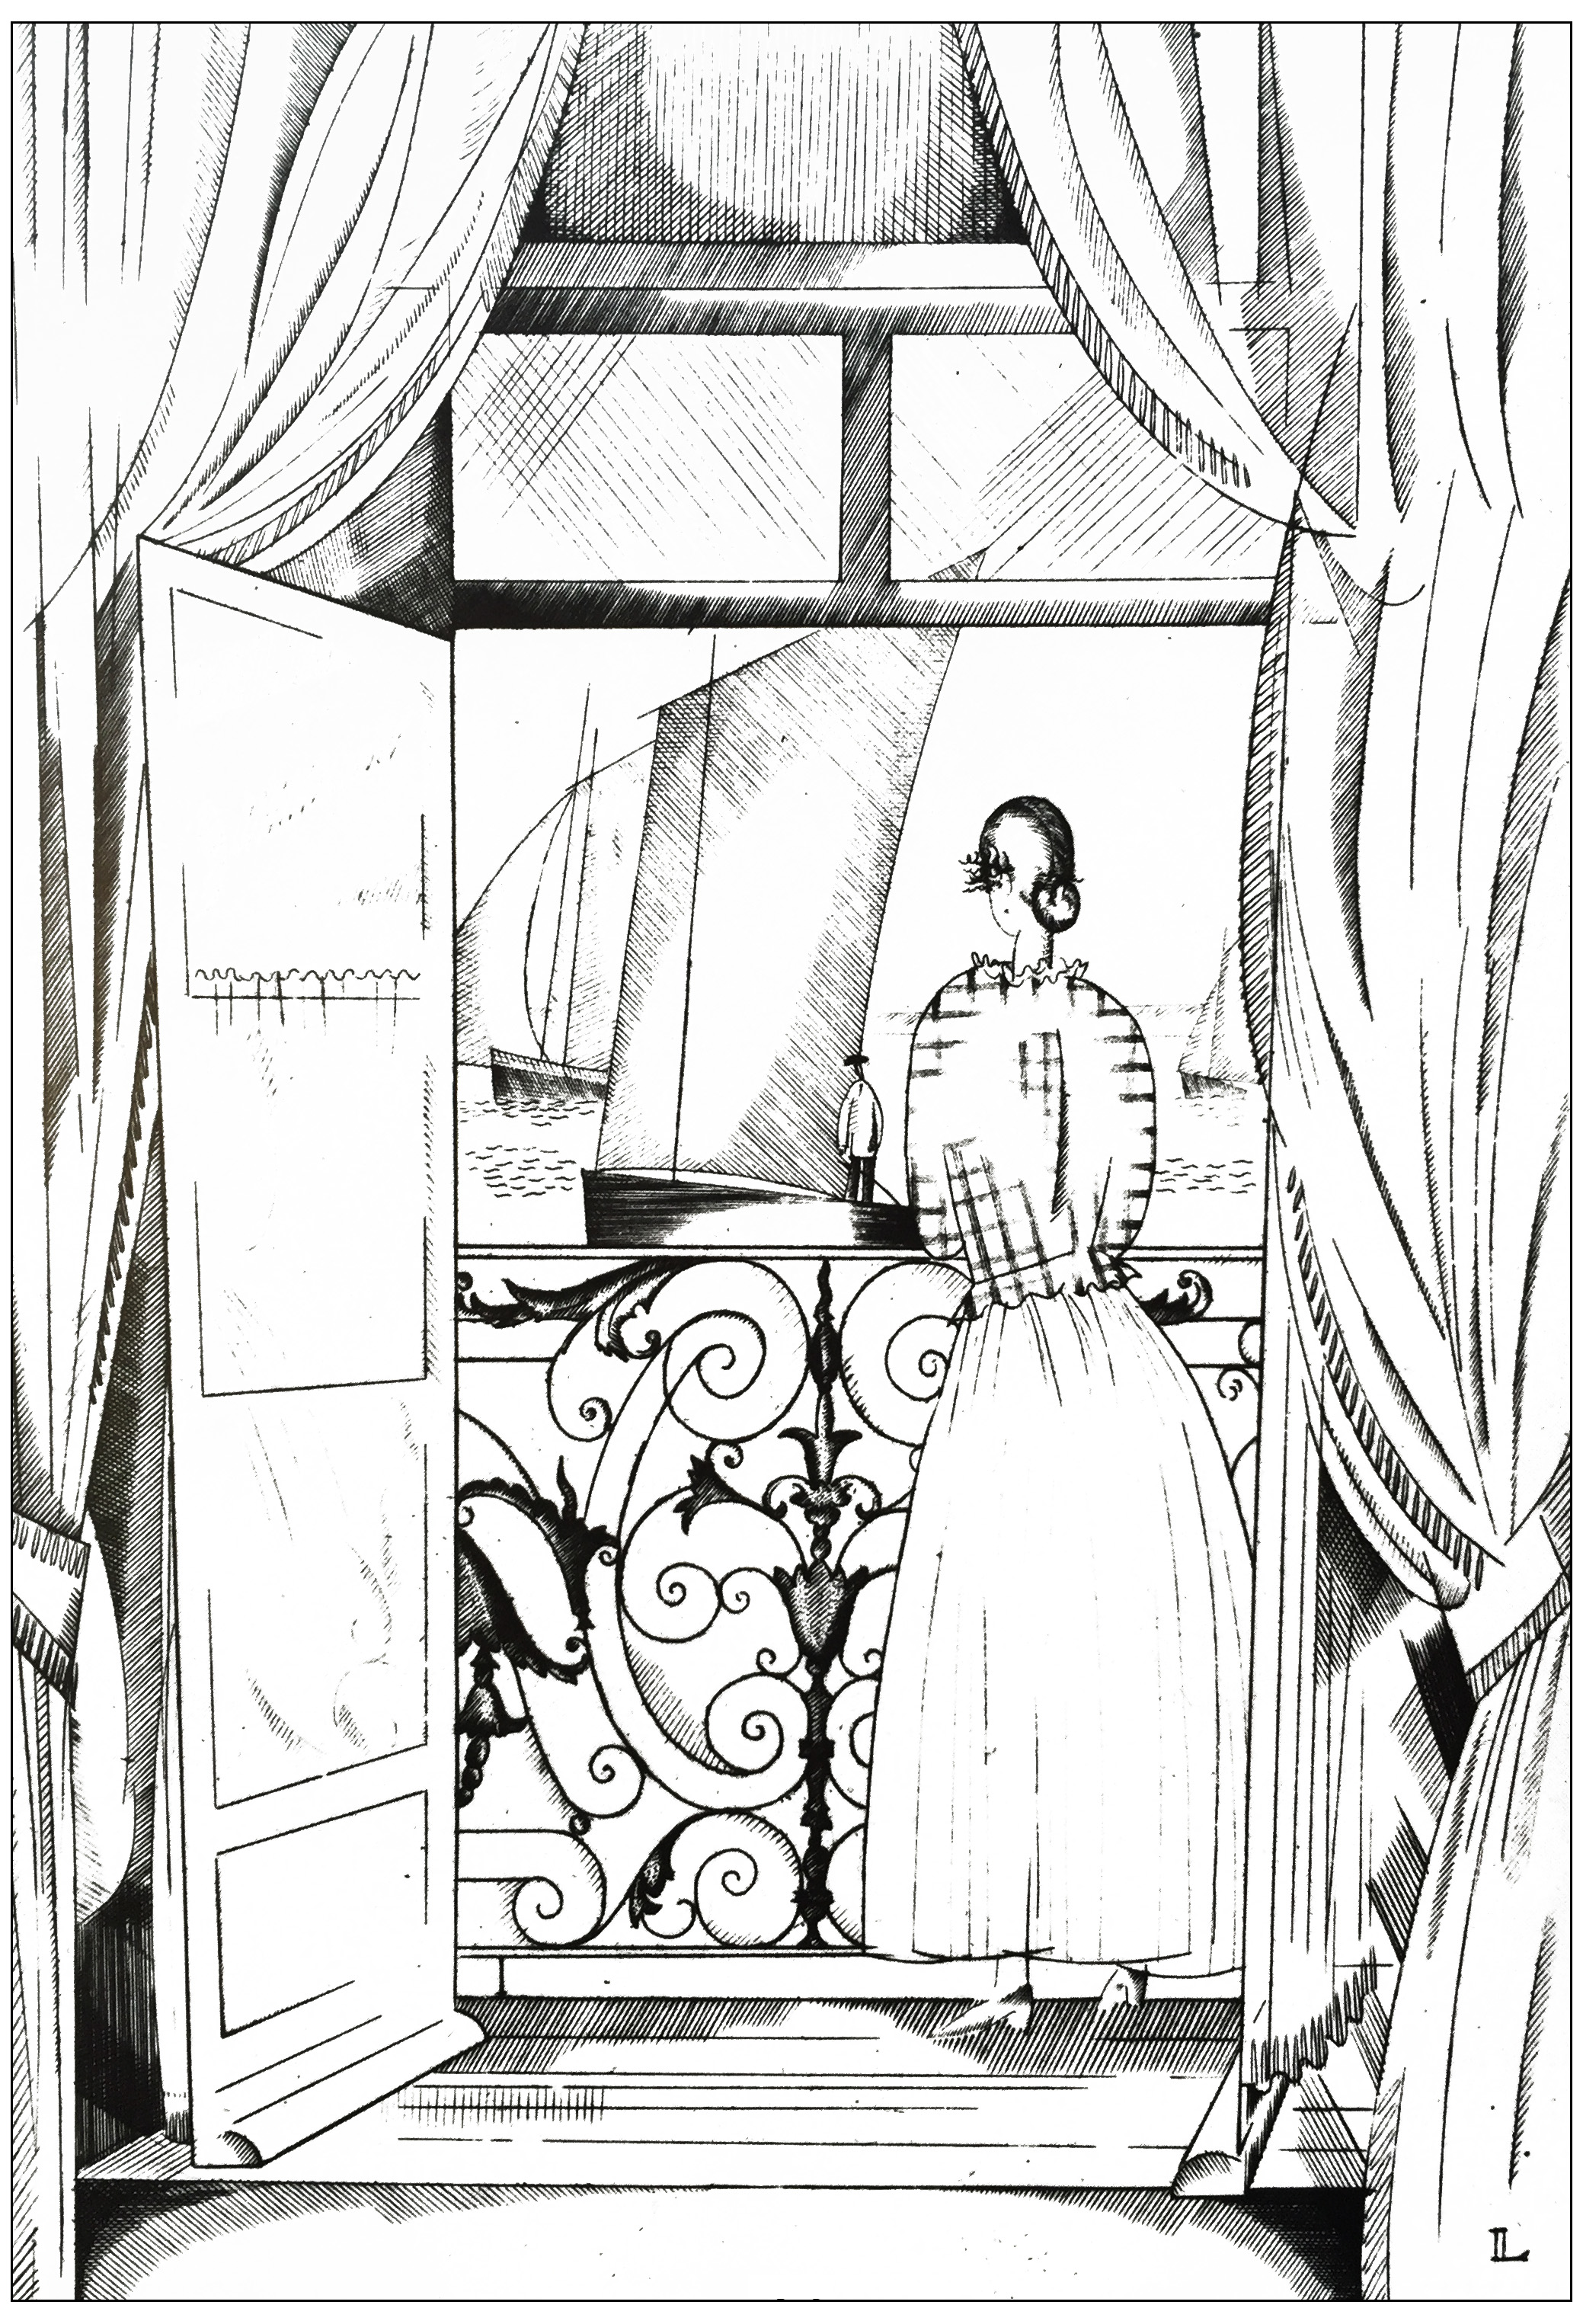 Coloring page created from an Art Deco drawing by Jean-Emile Laboureur : The balcony over the sea (1923)